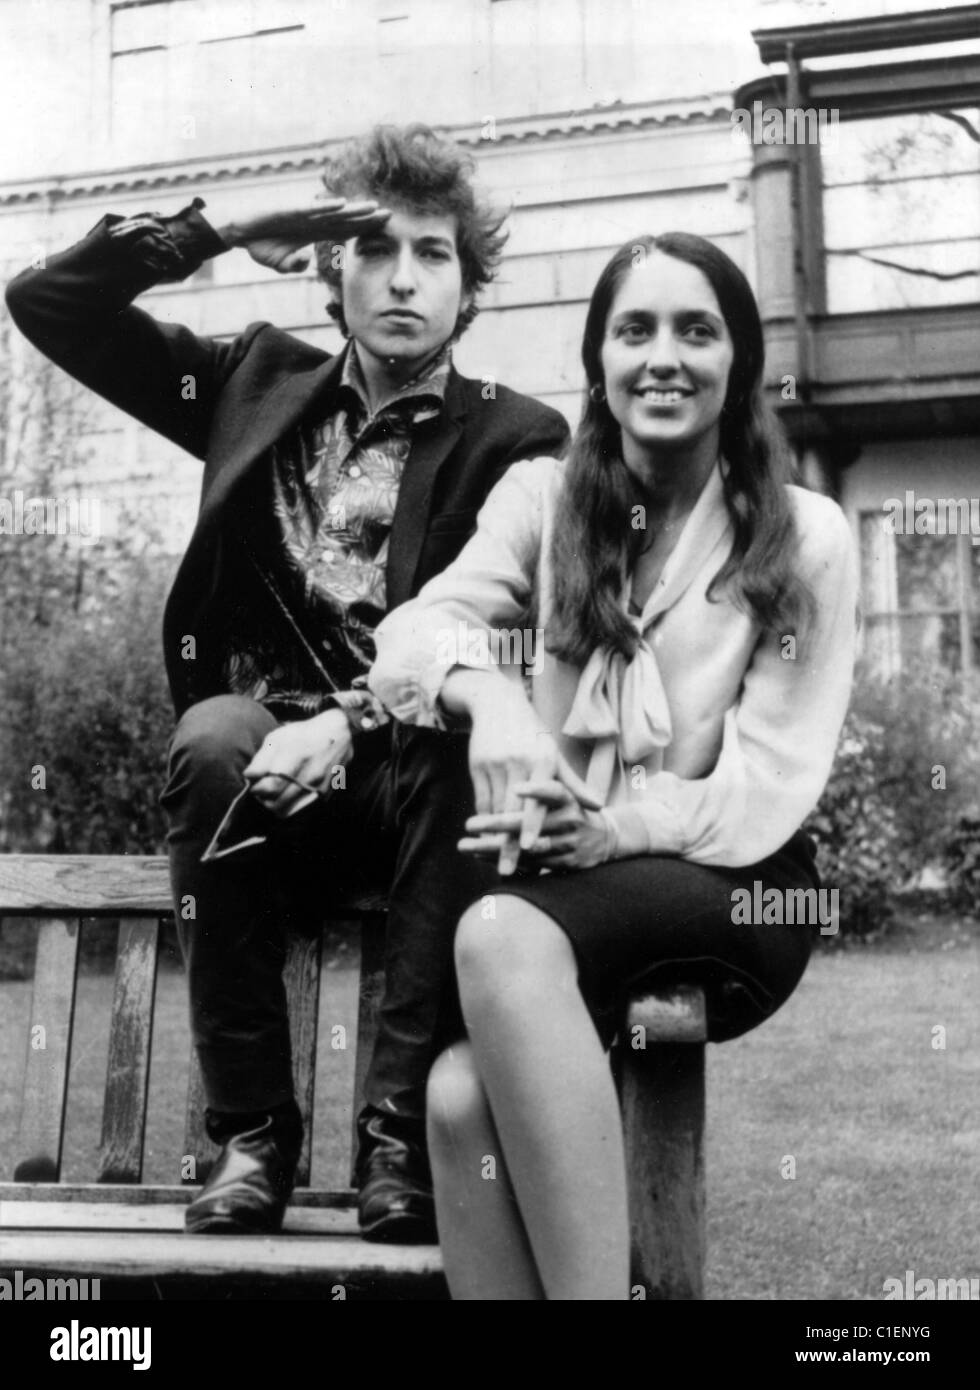 Bob Dylan And Joan Baez Outside Savoy Hotel London May 1965 Photo Stock Photo Alamy